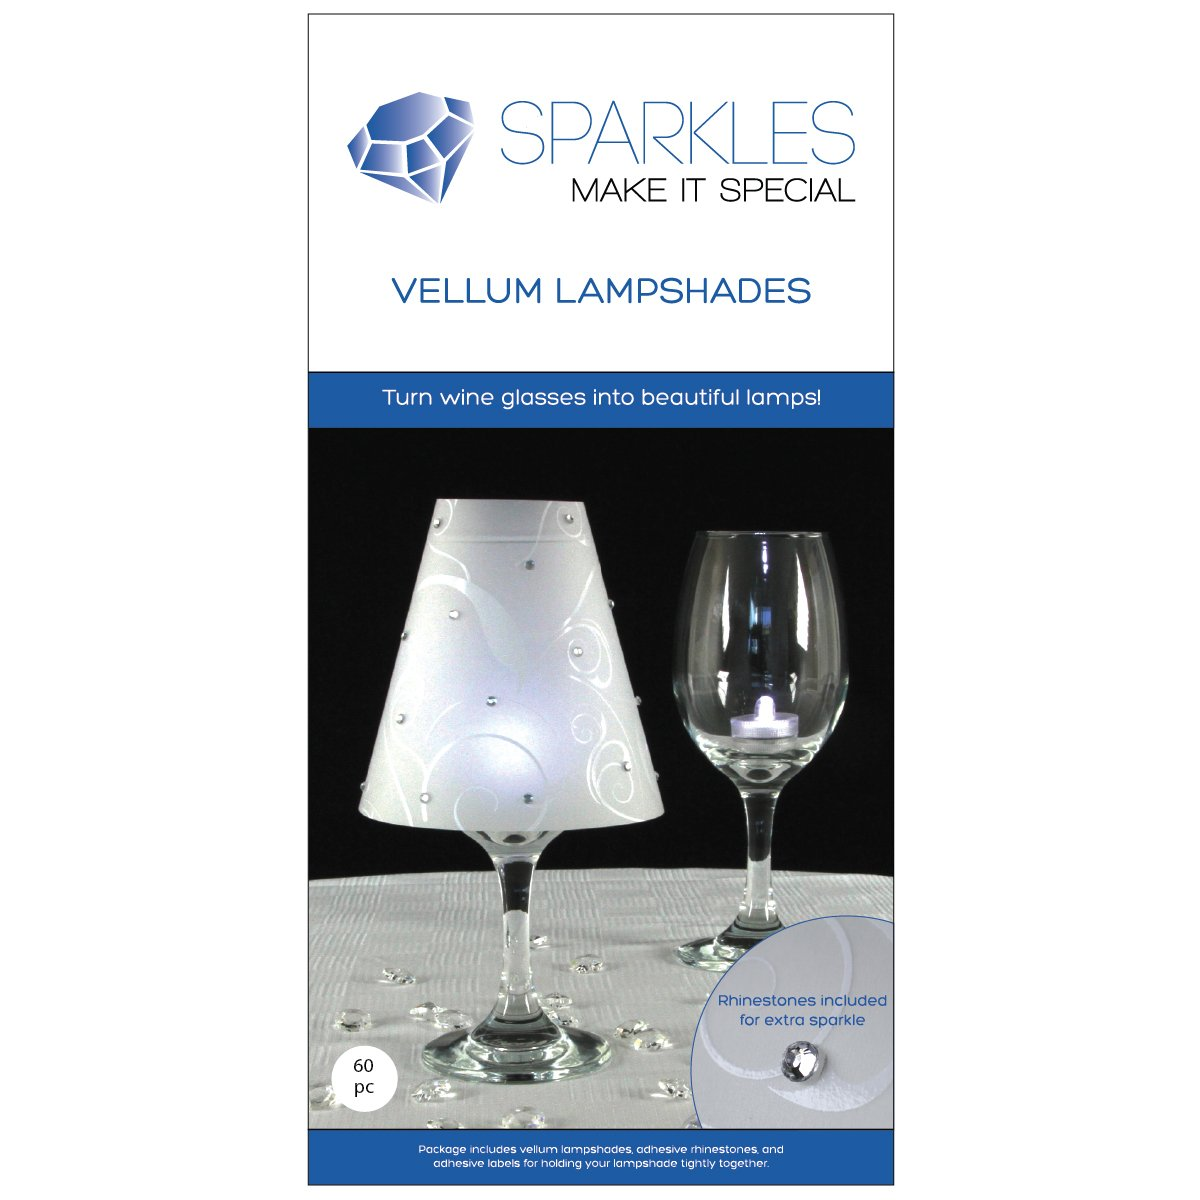 Sparkles Make It Special 60 pc Wine Glass Lamp Shades with Rhinestones - Wedding Party Table Centerpiece Decoration - White Vellum Swirl Print by Sparkles Make It Special